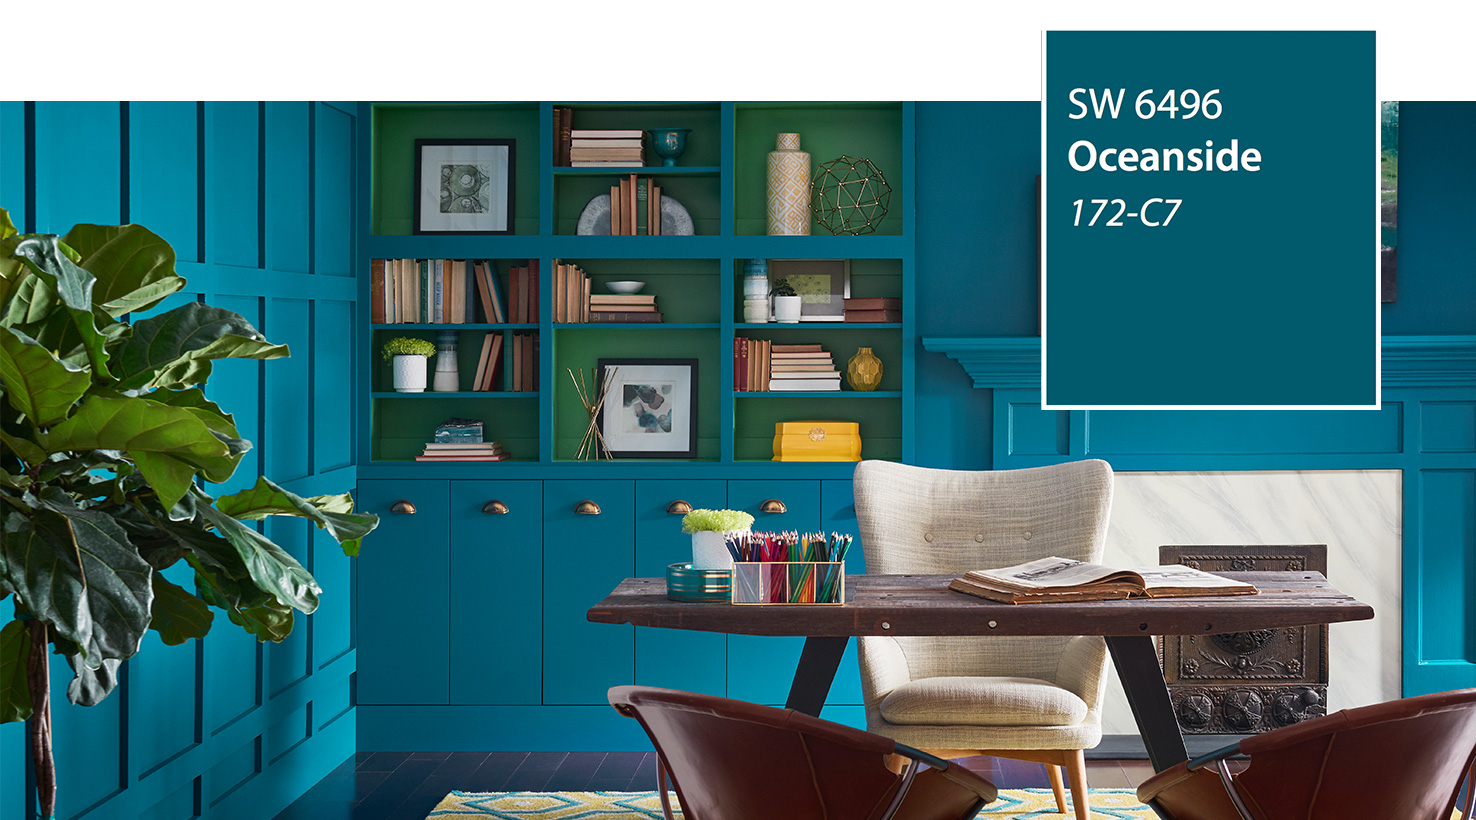 Full story here--- https://www.sherwin-williams.com/homeowners/color/find-and-explore-colors/paint-colors-by-collection/color-forecast/color-of-the-year